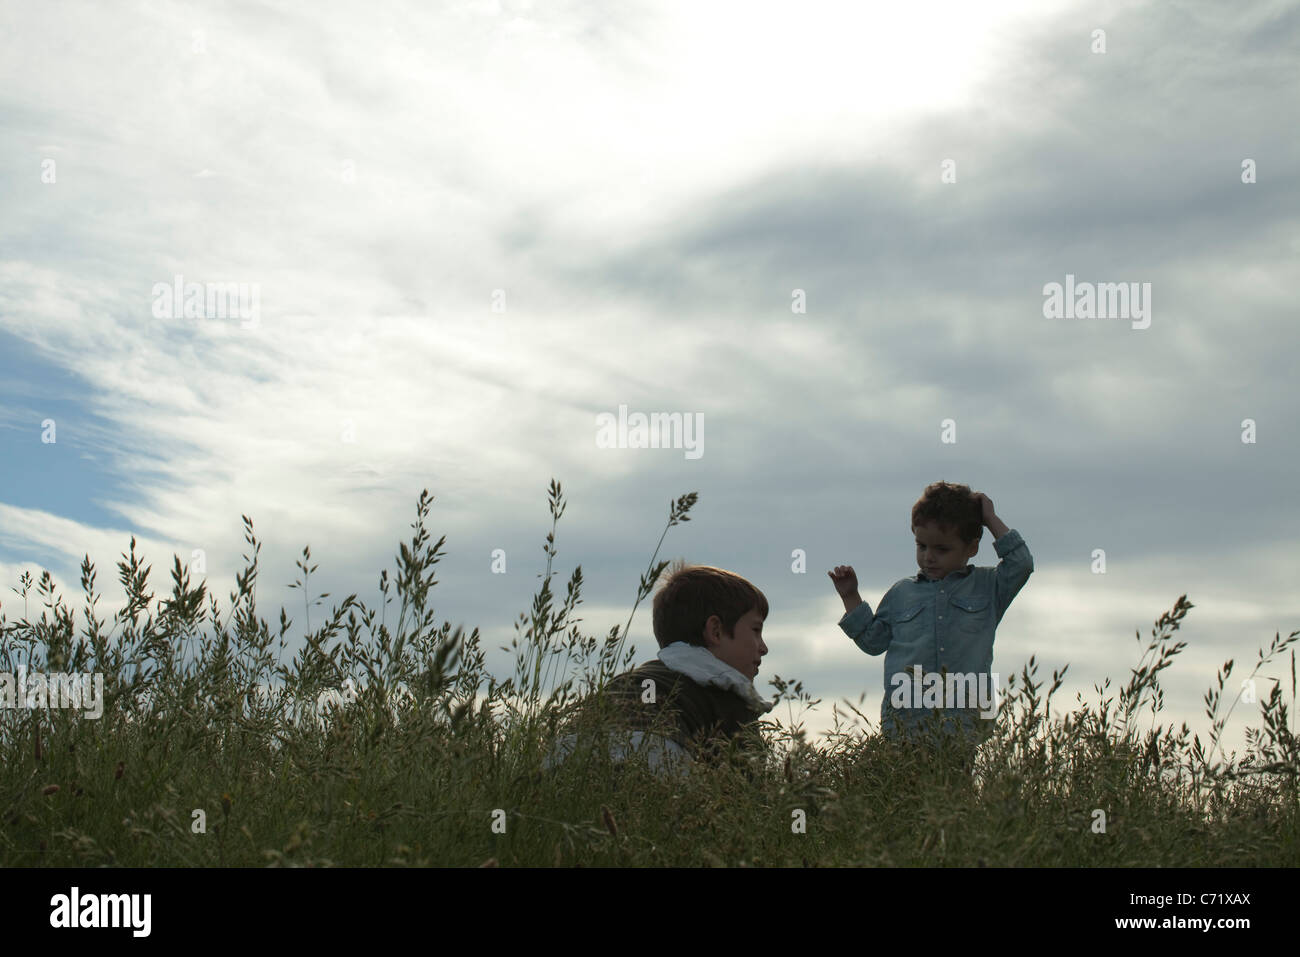 Boys in meadow - Stock Image